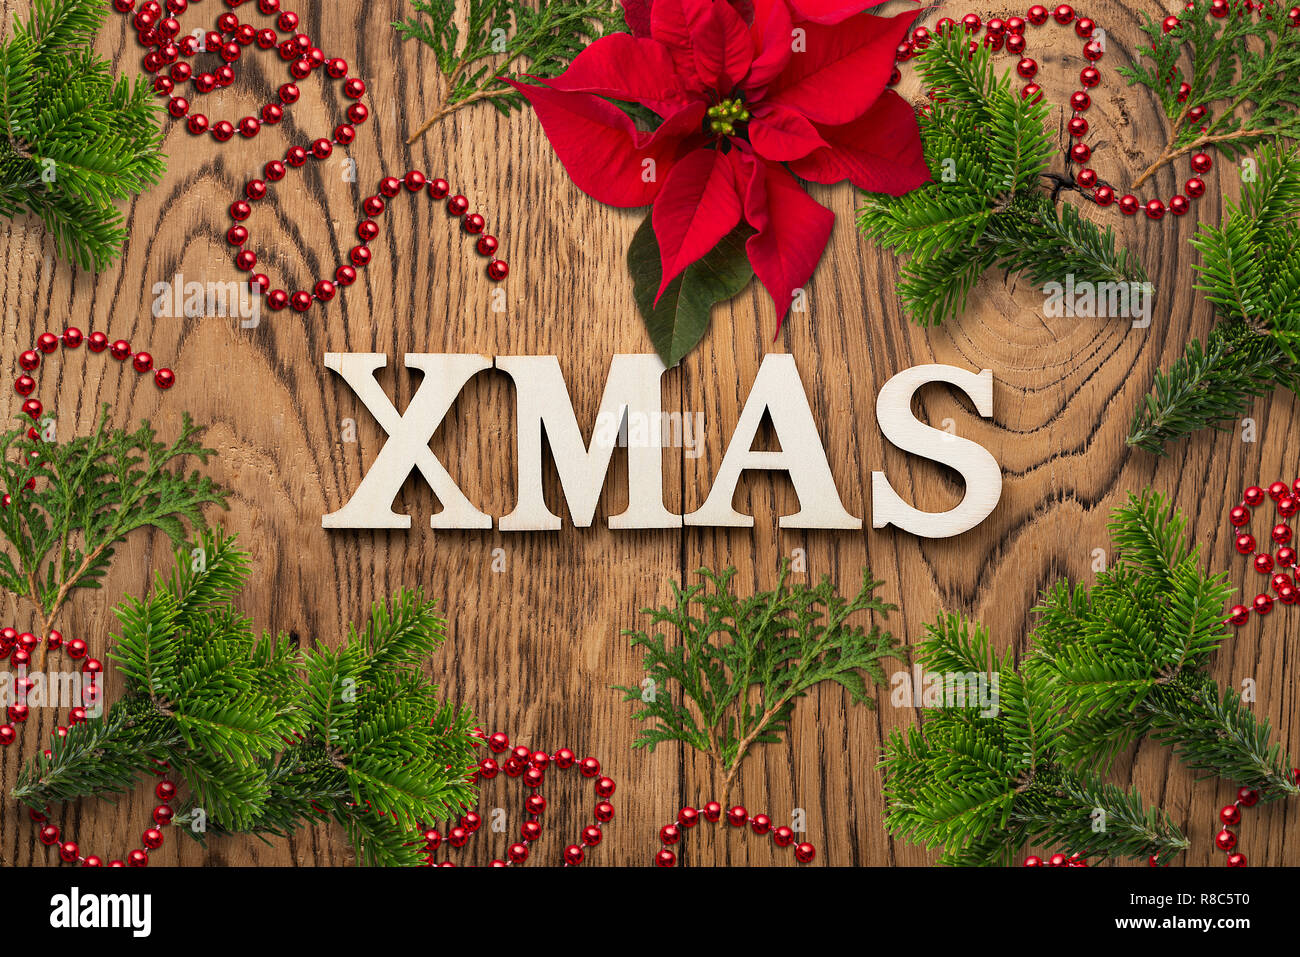 Christmas decoration on rustic wooden background and the message 'XMAS' - Stock Image